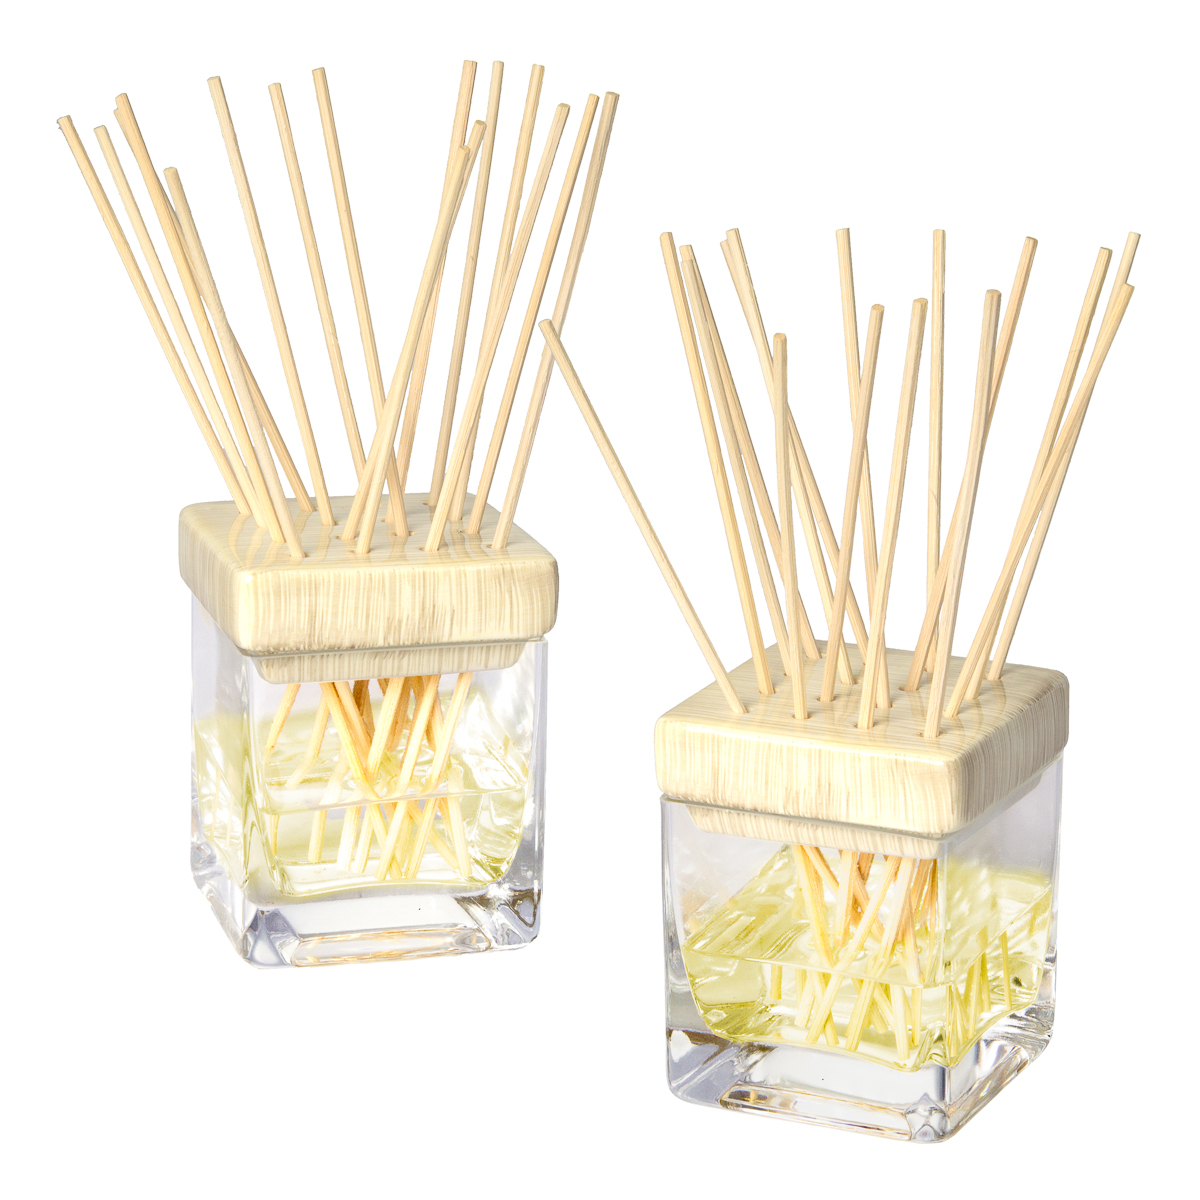 2 Reed Diffusers Essential Oils Set By Candle-lite Glass Ceramic Sticks Bottles